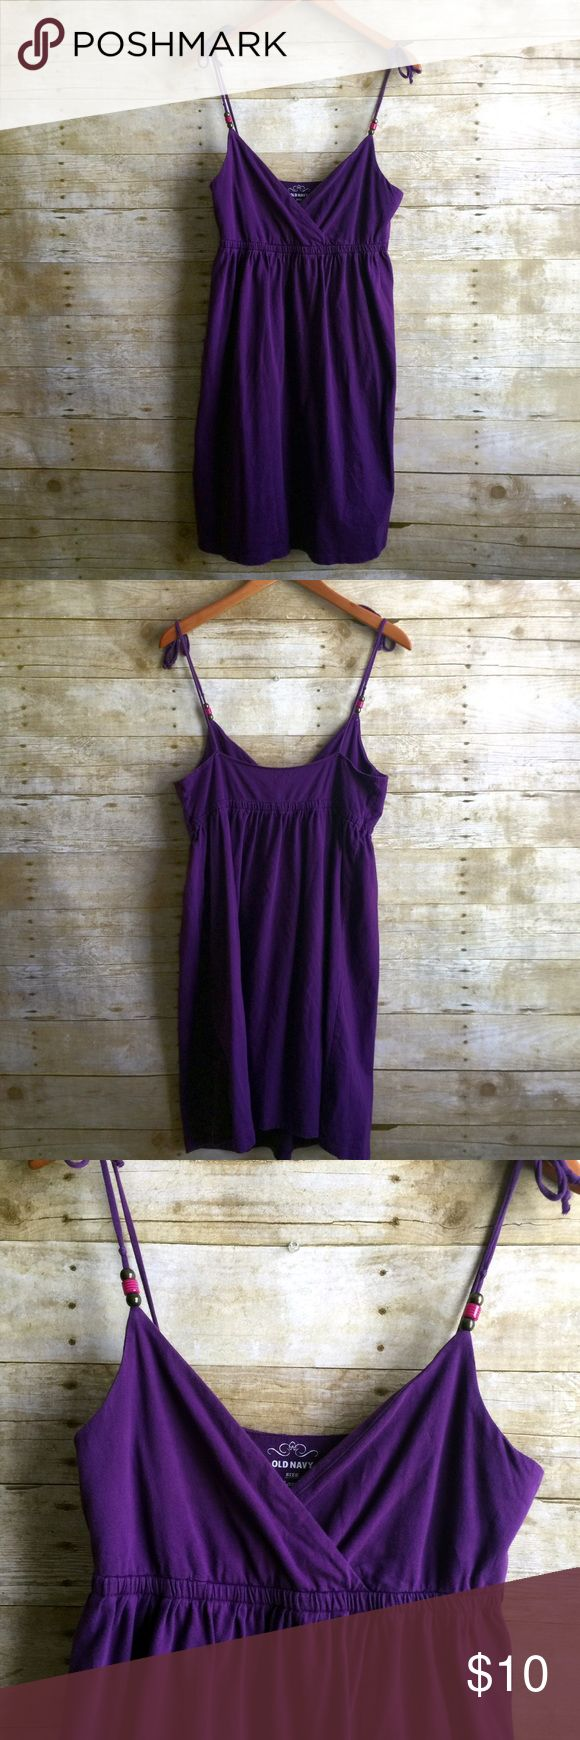 Dark Purple Dress Like new condition! Non adjustable straps. Beautiful dark purple color with beaded accents Old Navy Dresses Midi